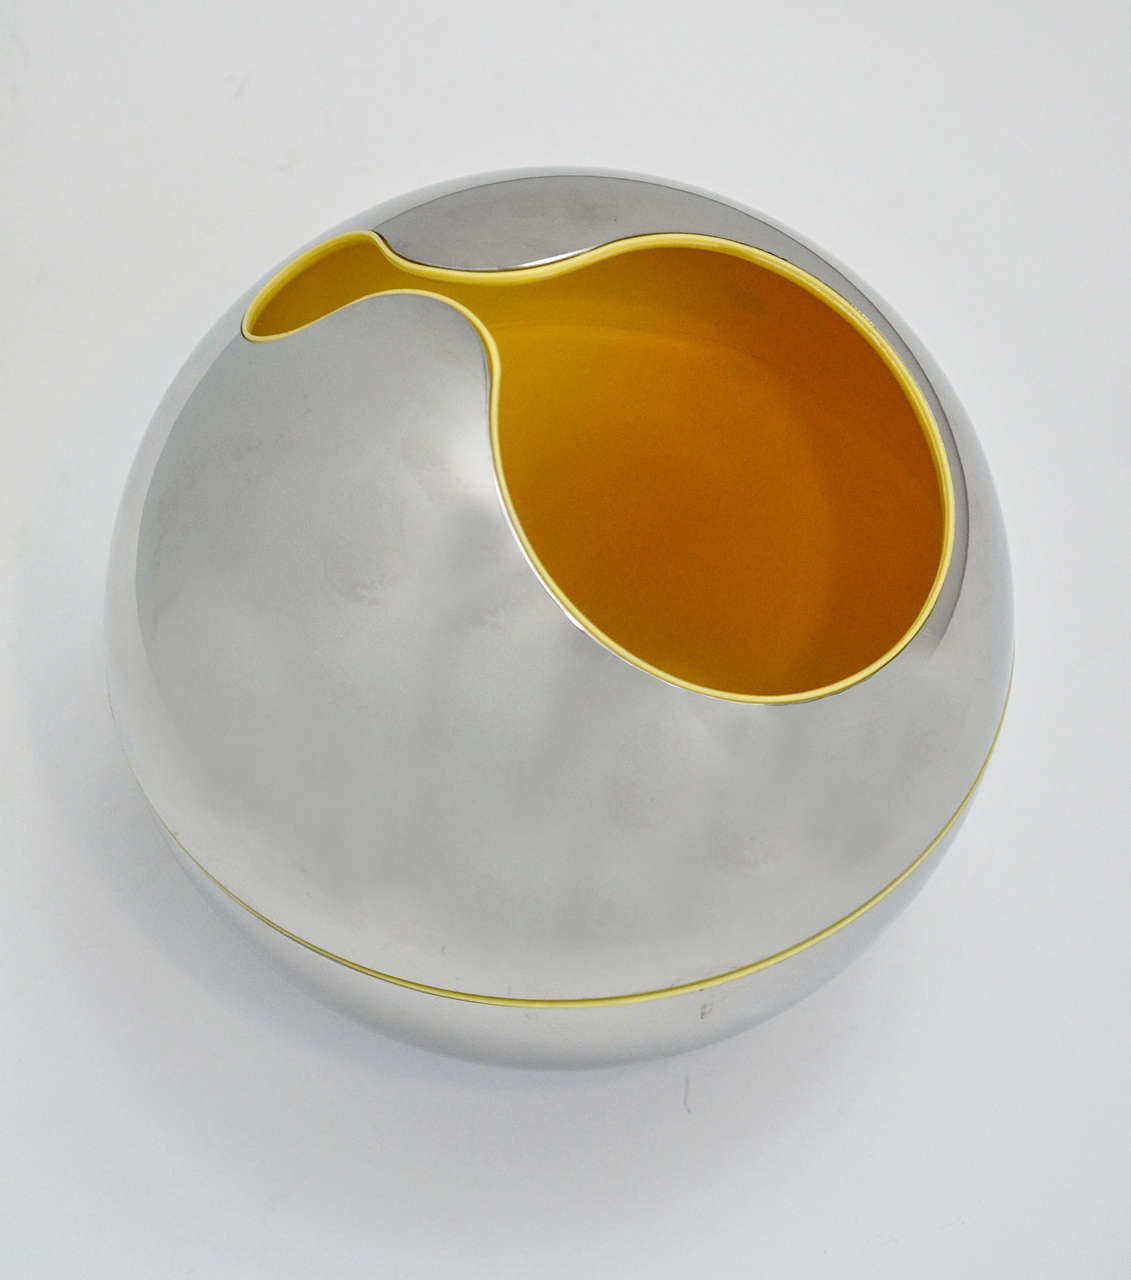 Gio Pomodoro Sphere or Holder for Alessi d'Apres, 1972 For Sale 1